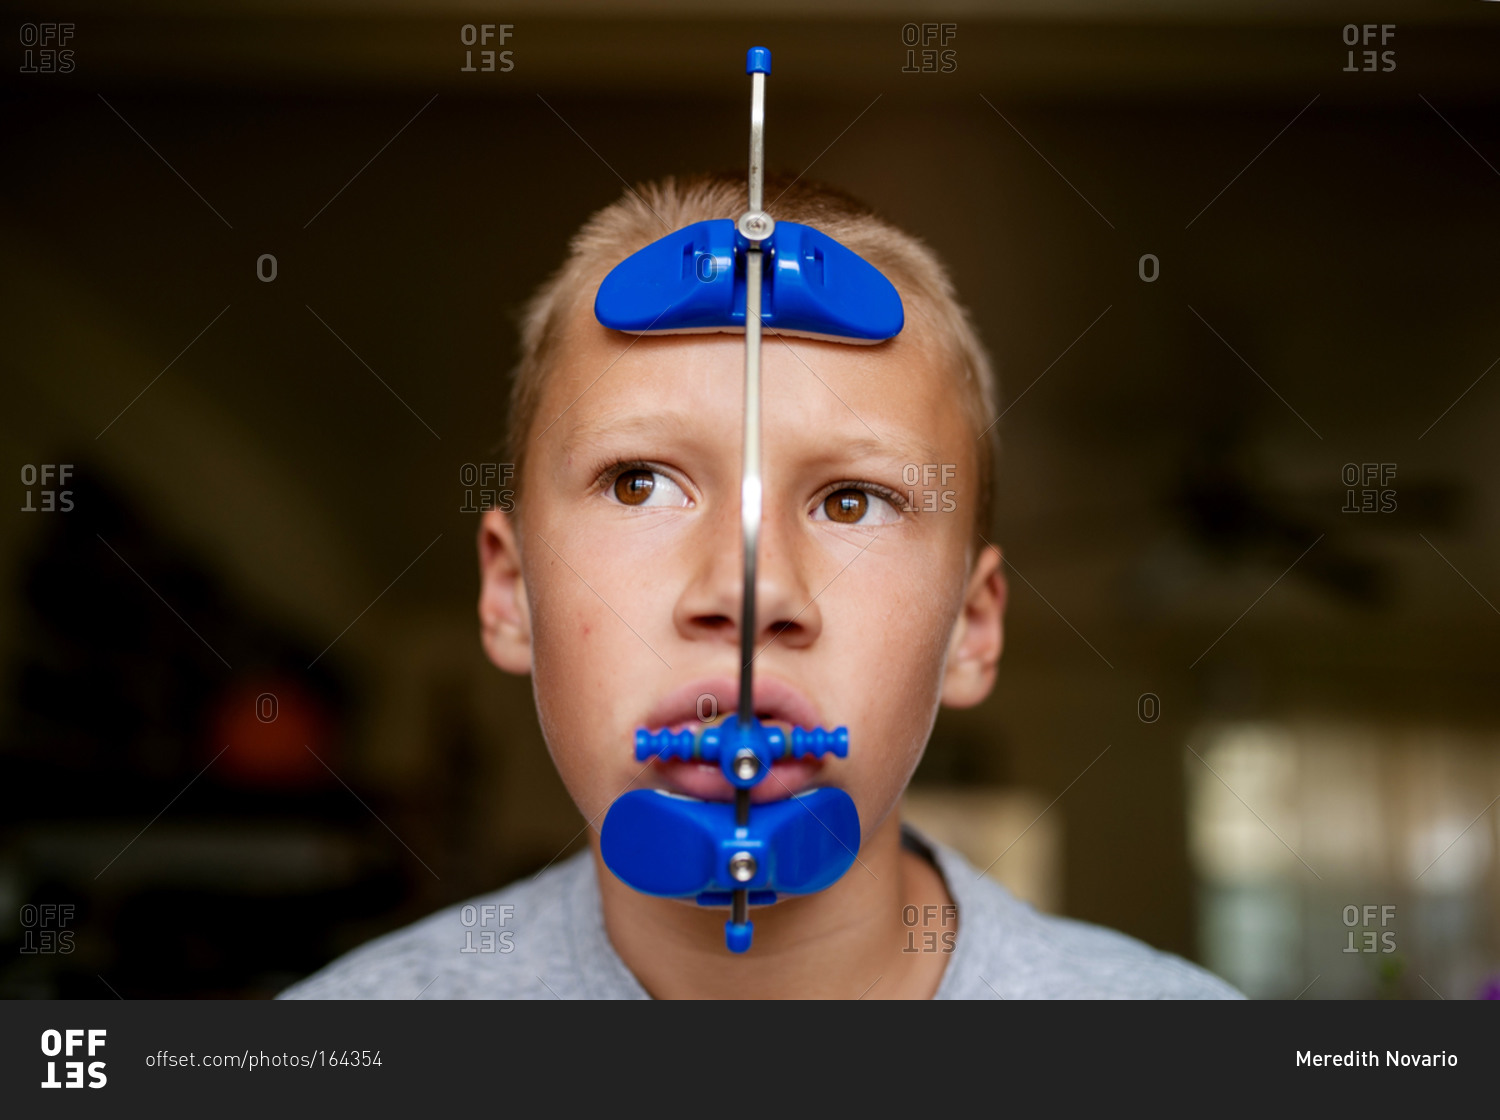 Boy wearing orthodontic headgear stock photo - OFFSET